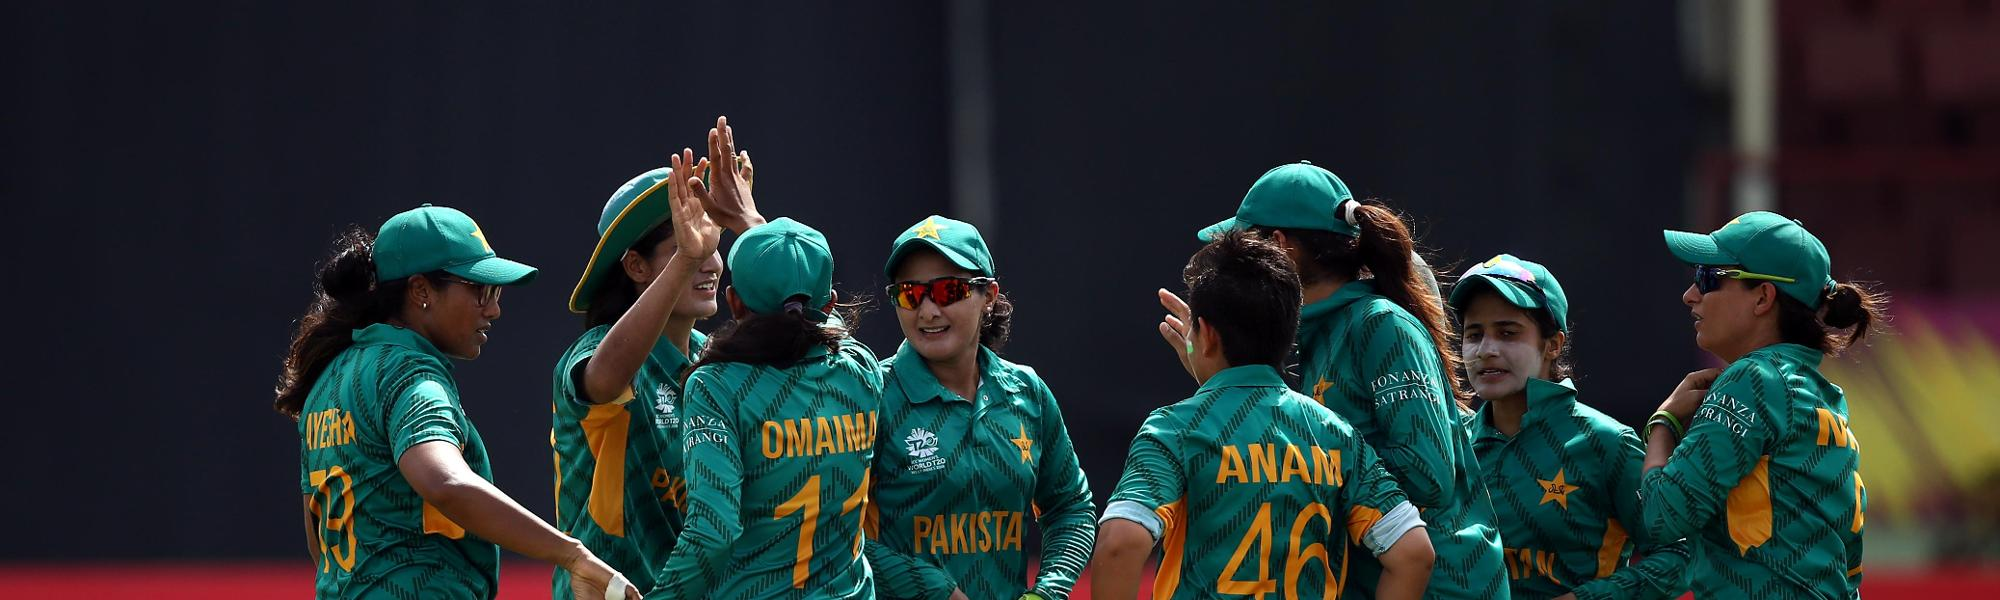 Pakistan Women